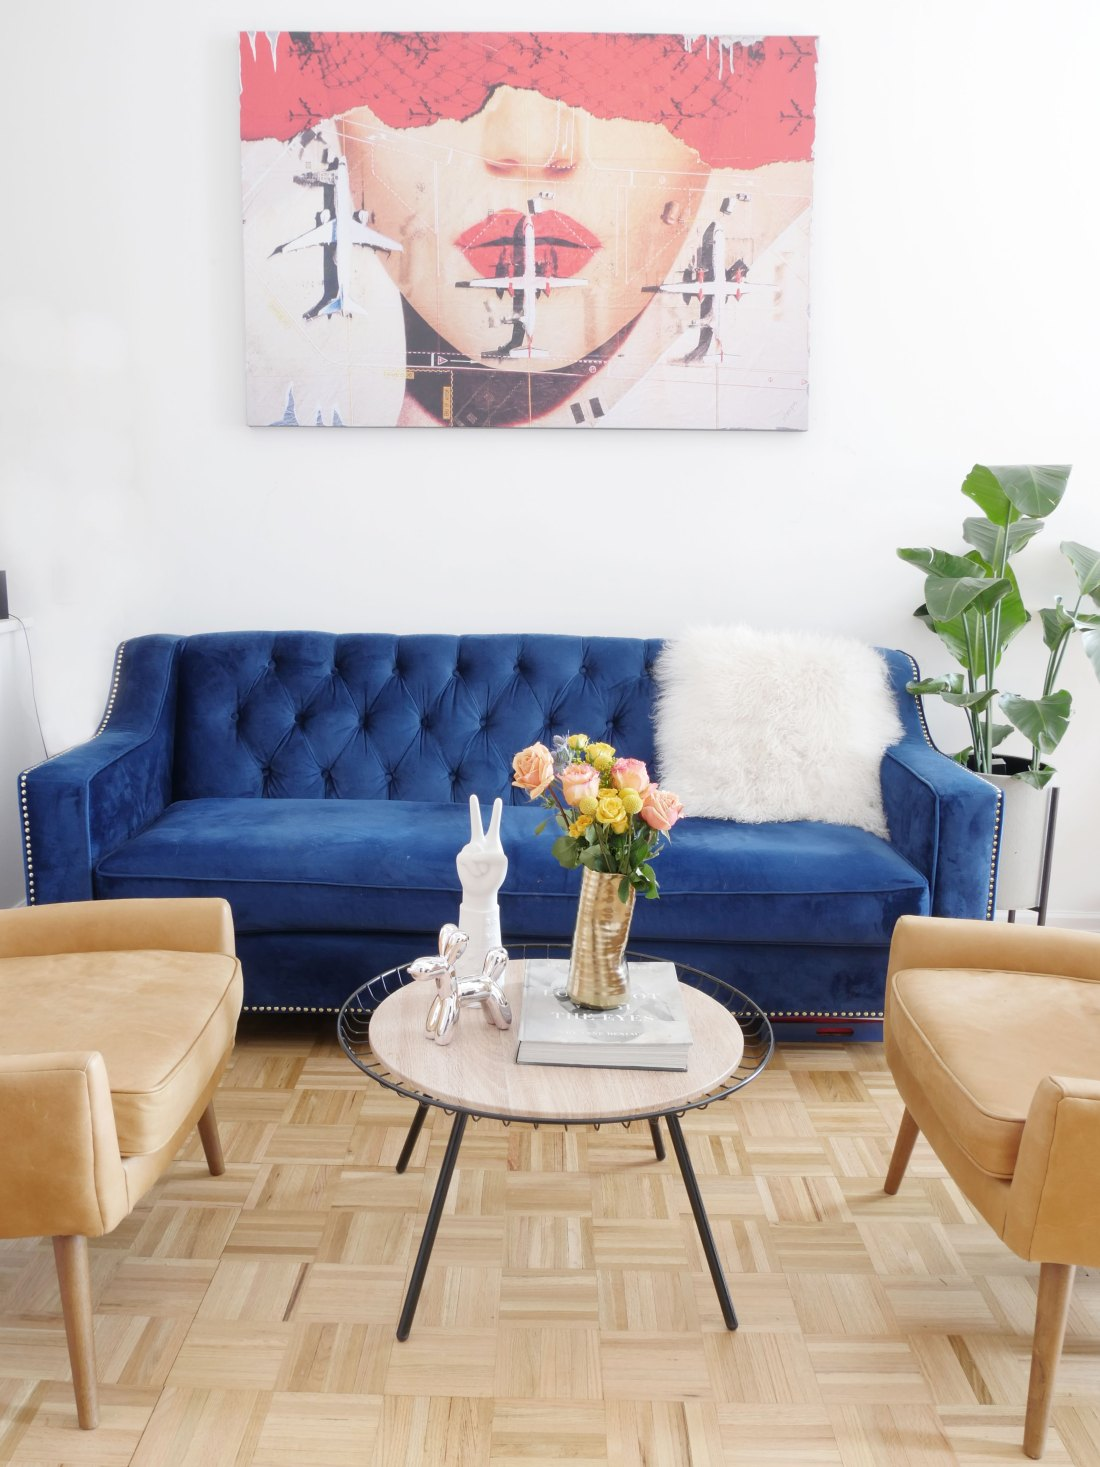 Live in a studio apartment and need some inspiration? This eclectic living room is everything a renter can dream of. #studioapartmentideas #tinystudioapartmentideas #studioapartmentdecorating #decoratingonabudget #smallapartmentideas #livingroomdecor #livingroomideas